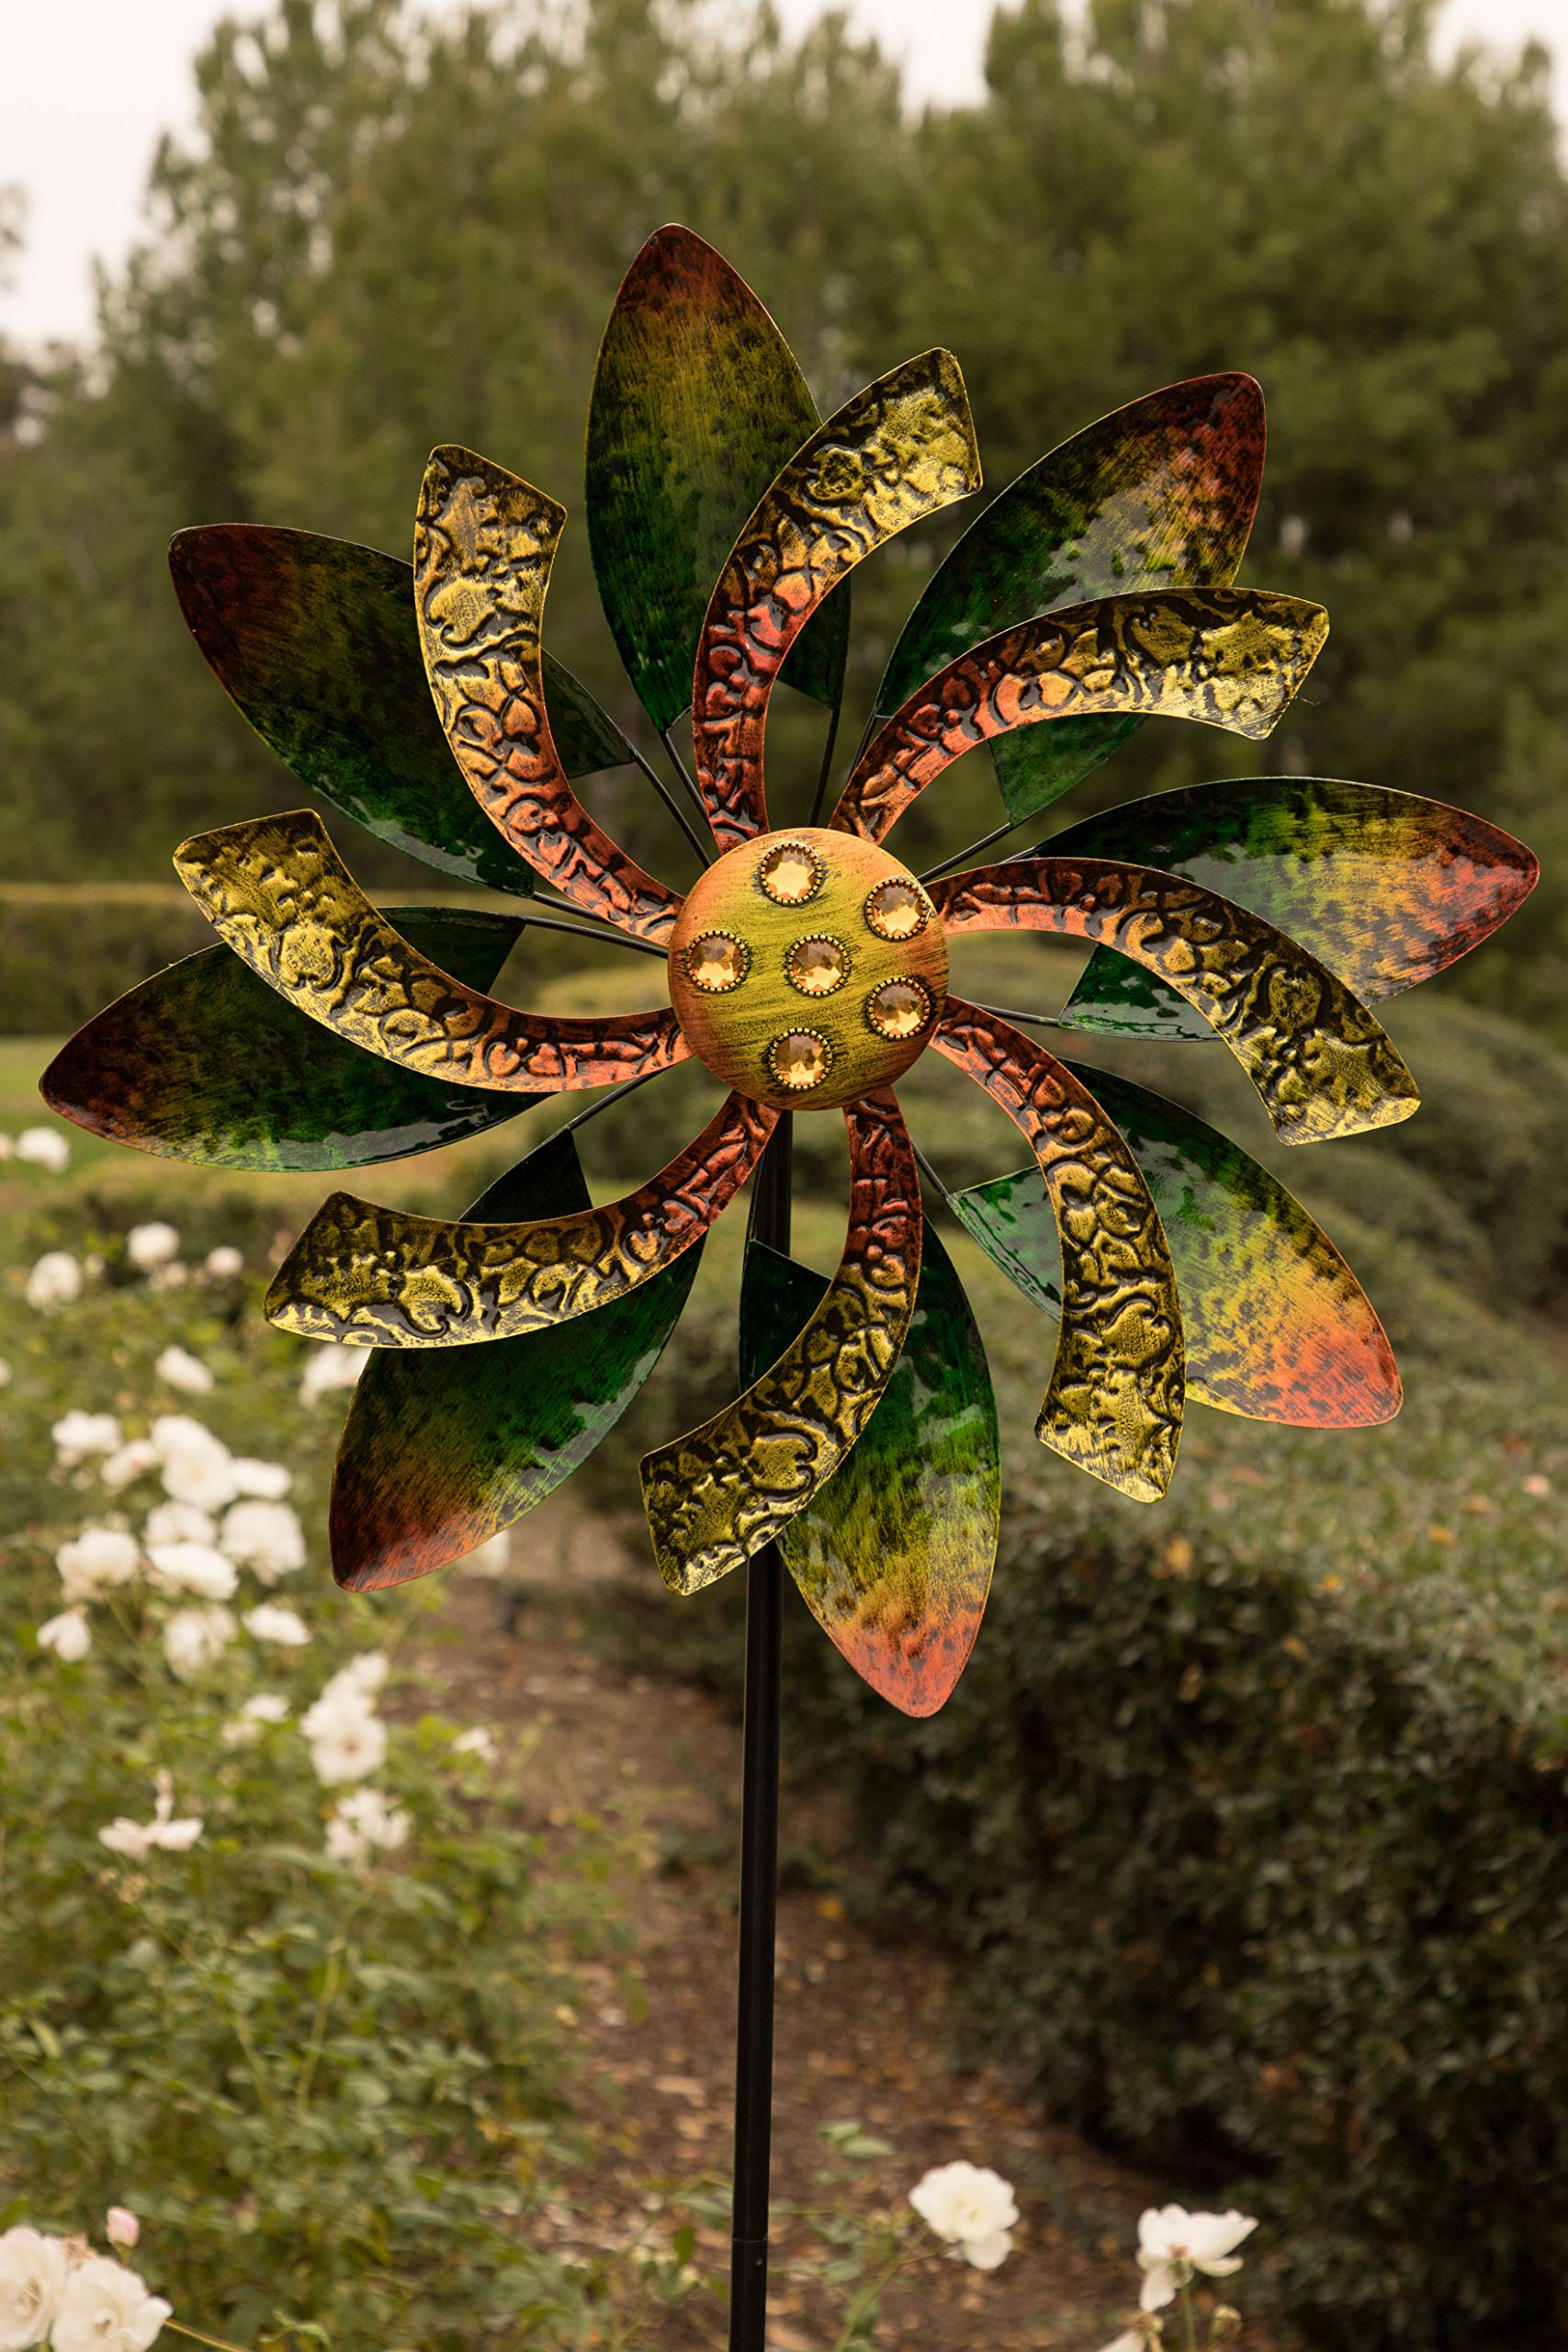 Alpine Corporation Dual Floral Windmill Stake with Gems - Kinetic Spinner - Outdoor Yard Art Decor - Green and Orange - 22'' x 7'' x 65''